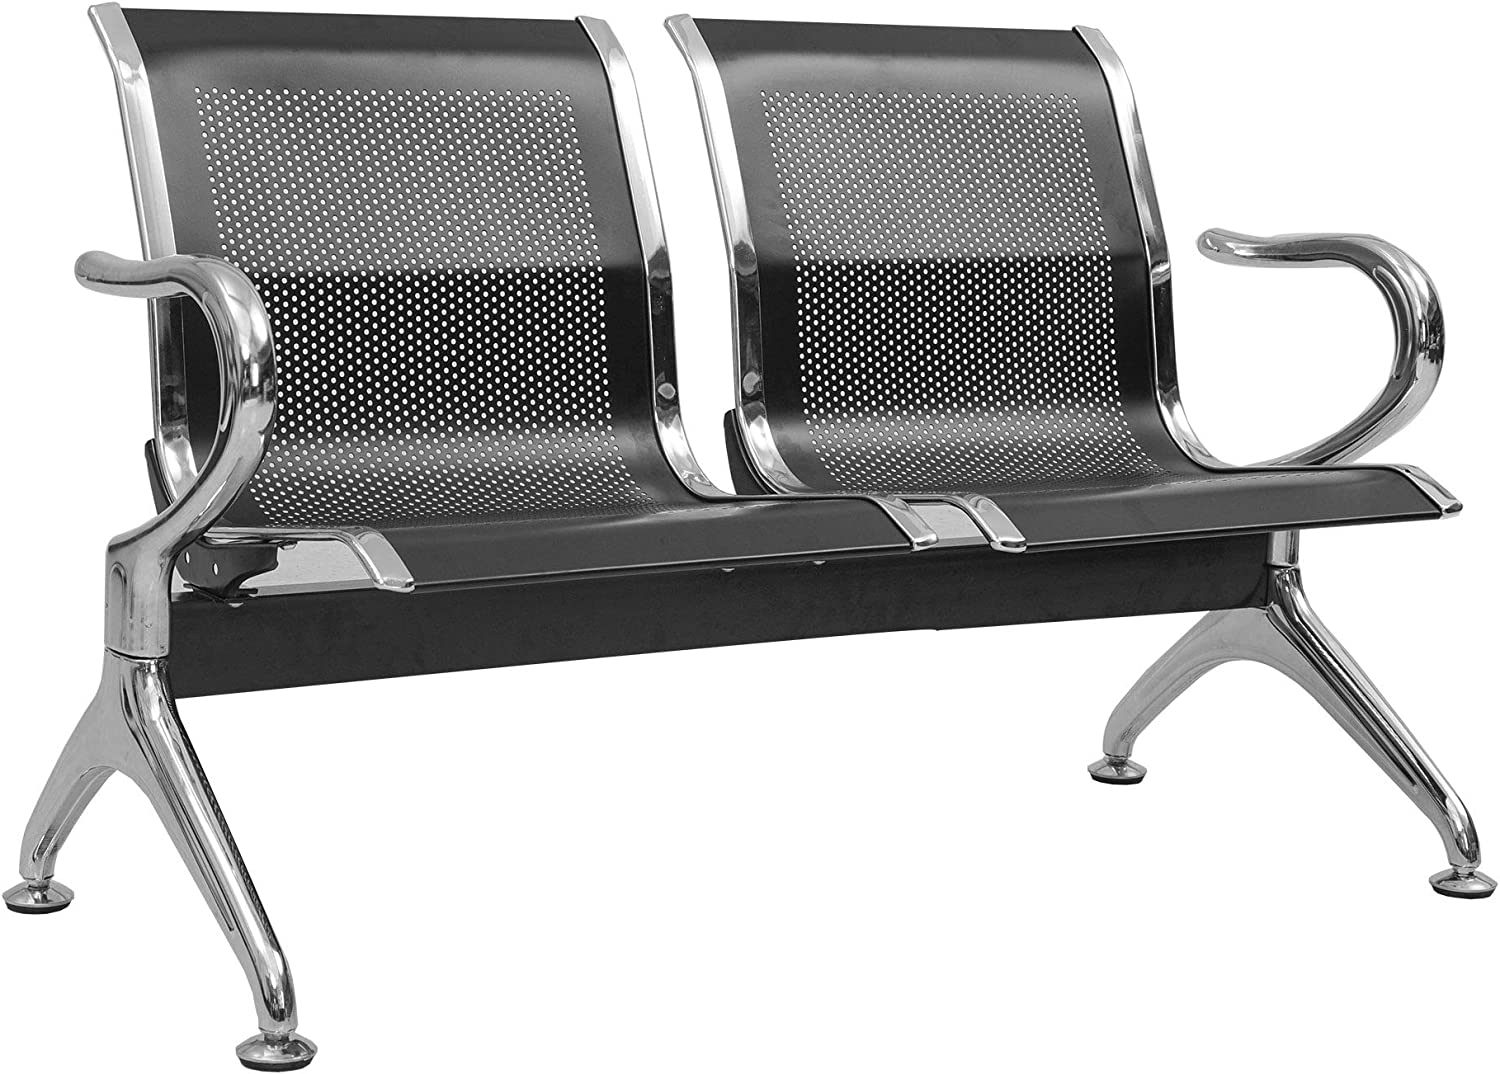 Reception Chair Waiting Room Chair with Arms Reception Bench for Business, Office, Hospital,Airport (Black, 2 Seats)